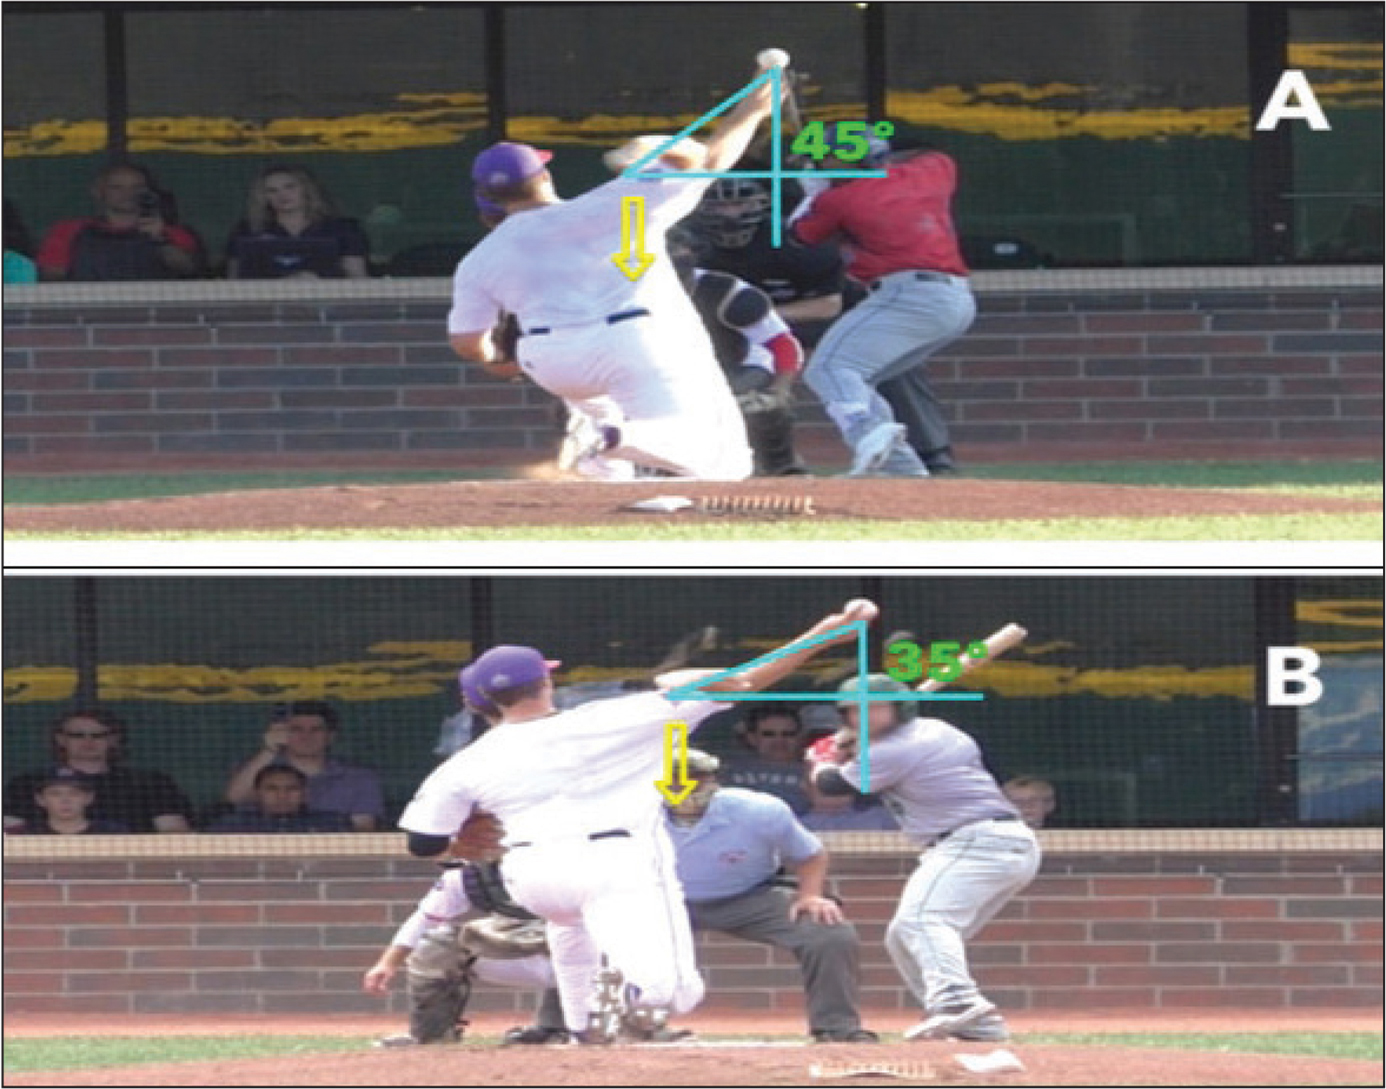 Representative example of components assessed in the path of arm acceleration category from the centerfield camera view. A pitcher in the lower scoring position with a lower arm slot position in late cocking occurring further from the midline of the body (A). A pitcher in the higher scoring position with a higher arm slot, with point of maximal late cocking closer to the midline of the body (B). Angle between white lines is the arm slot angle (angle between throwing arm and horizontal). Yellow arrows indicate point of late cocking.